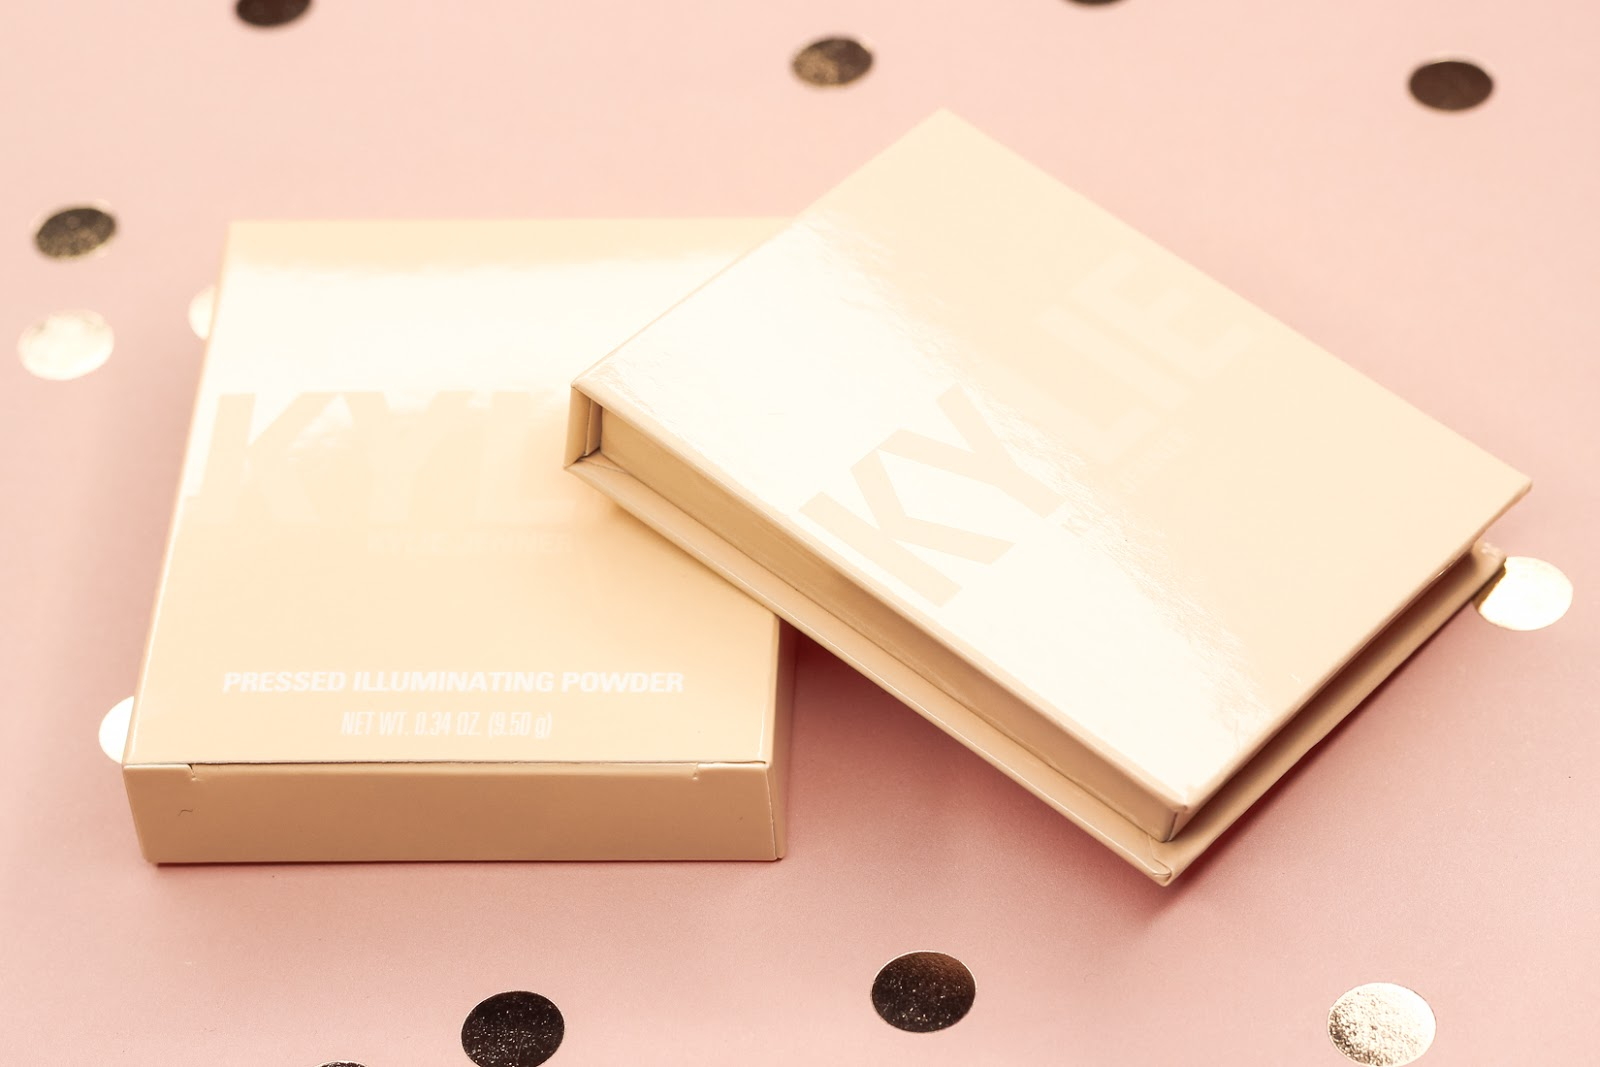 Review│Kylie Cosmetics Kylighter Pressed Illuminating Powder In French Vanilla